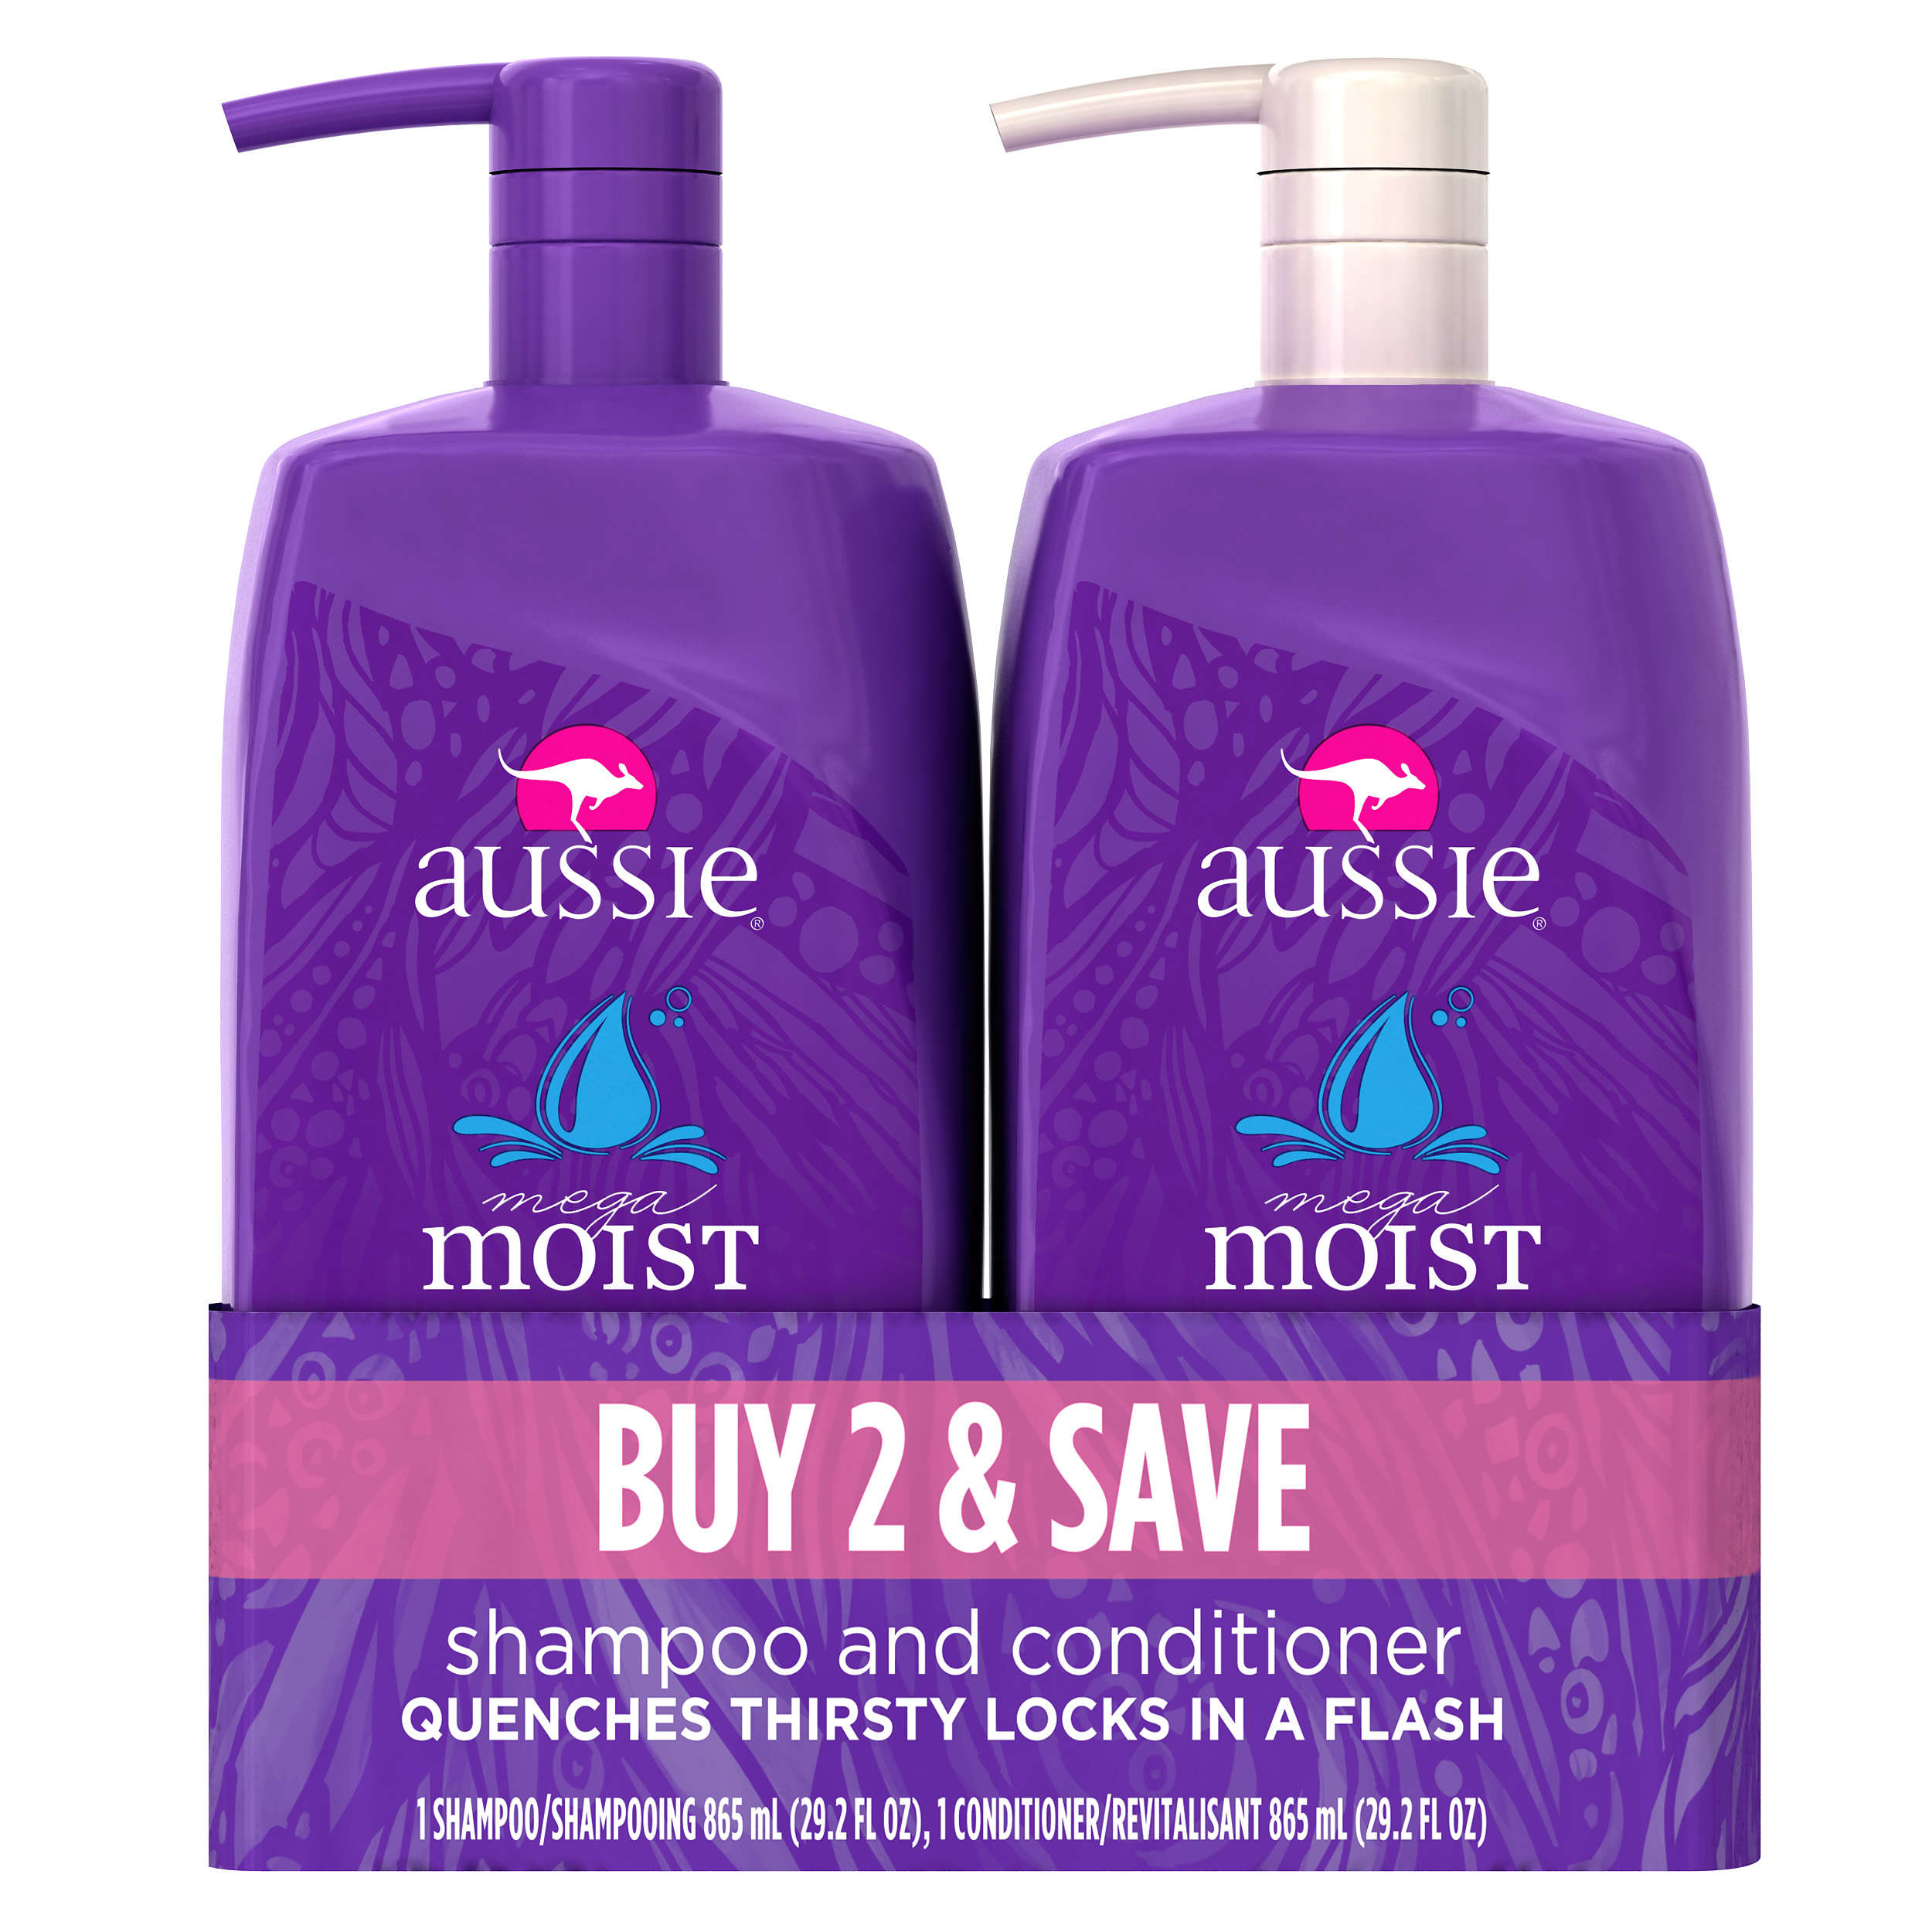 Aussie Mega Moist Shampoo and Conditioner Dual Pack, 29.2 fl oz (Each)